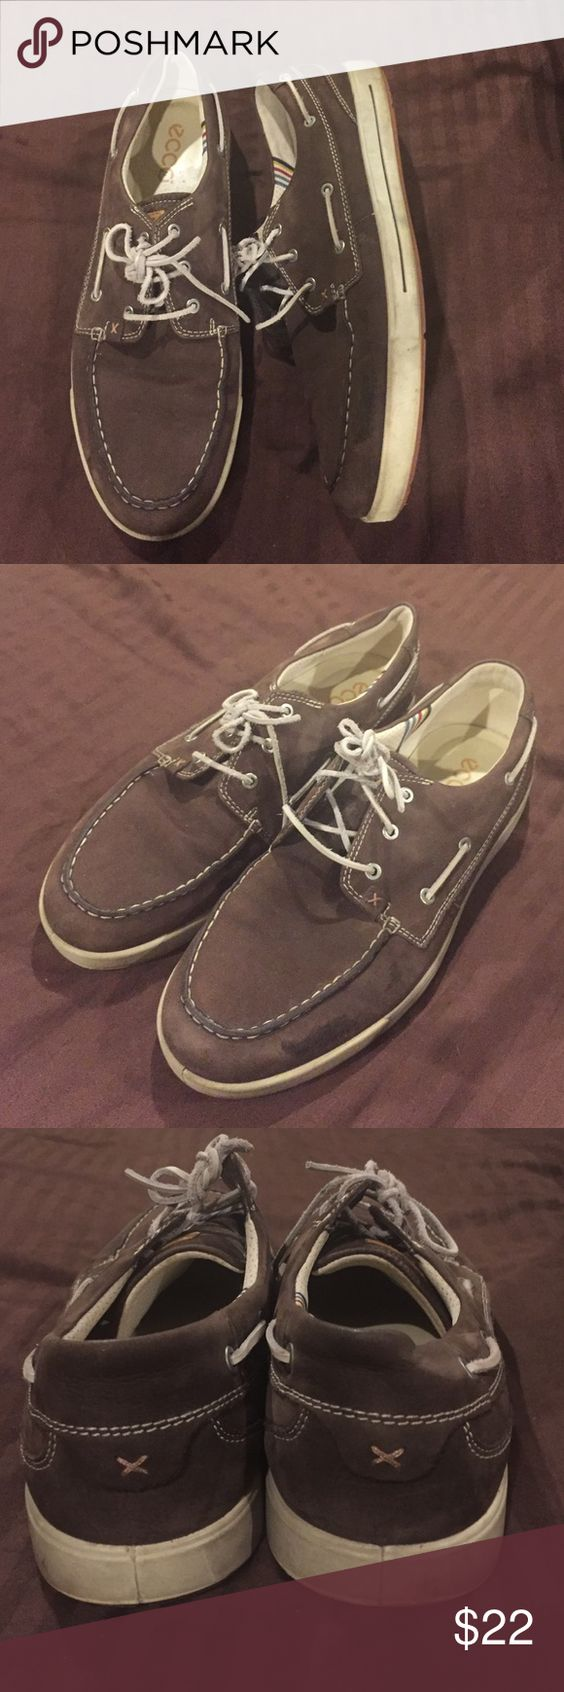 Ecco brown leather boat shoes size 14